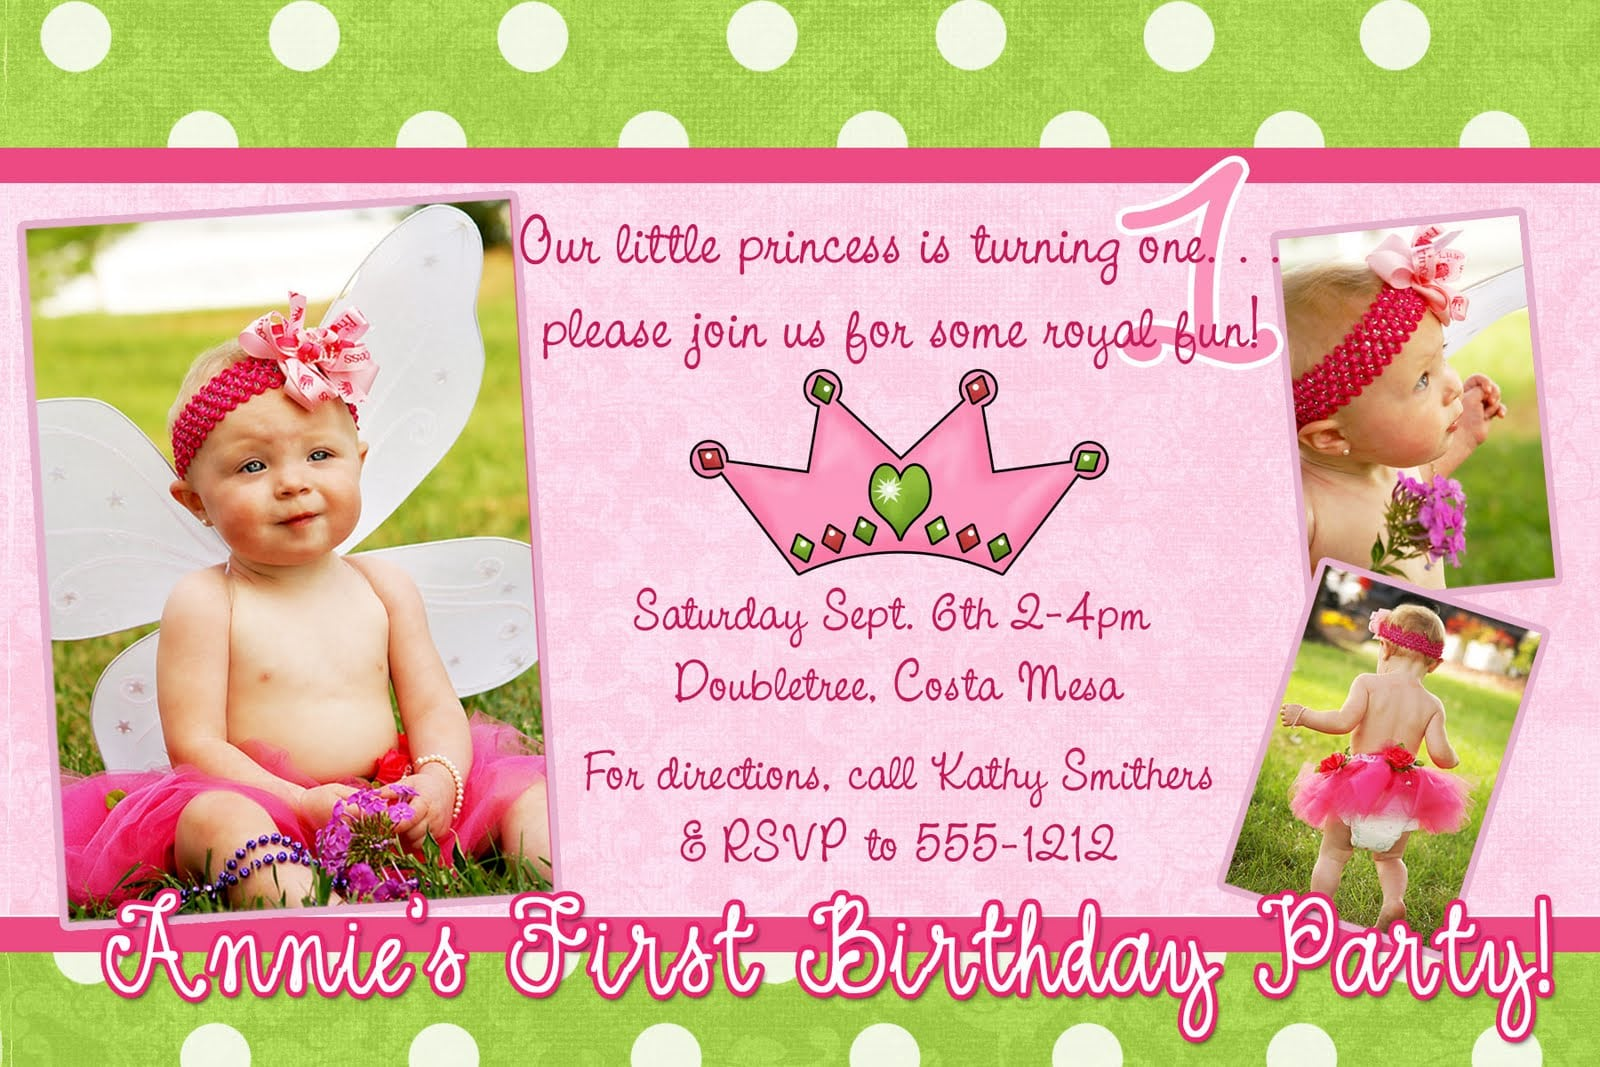 1st birthday party invitation examples picture gallery party birthday invitation letter sample 1st birthday invitation example stopboris Choice Image